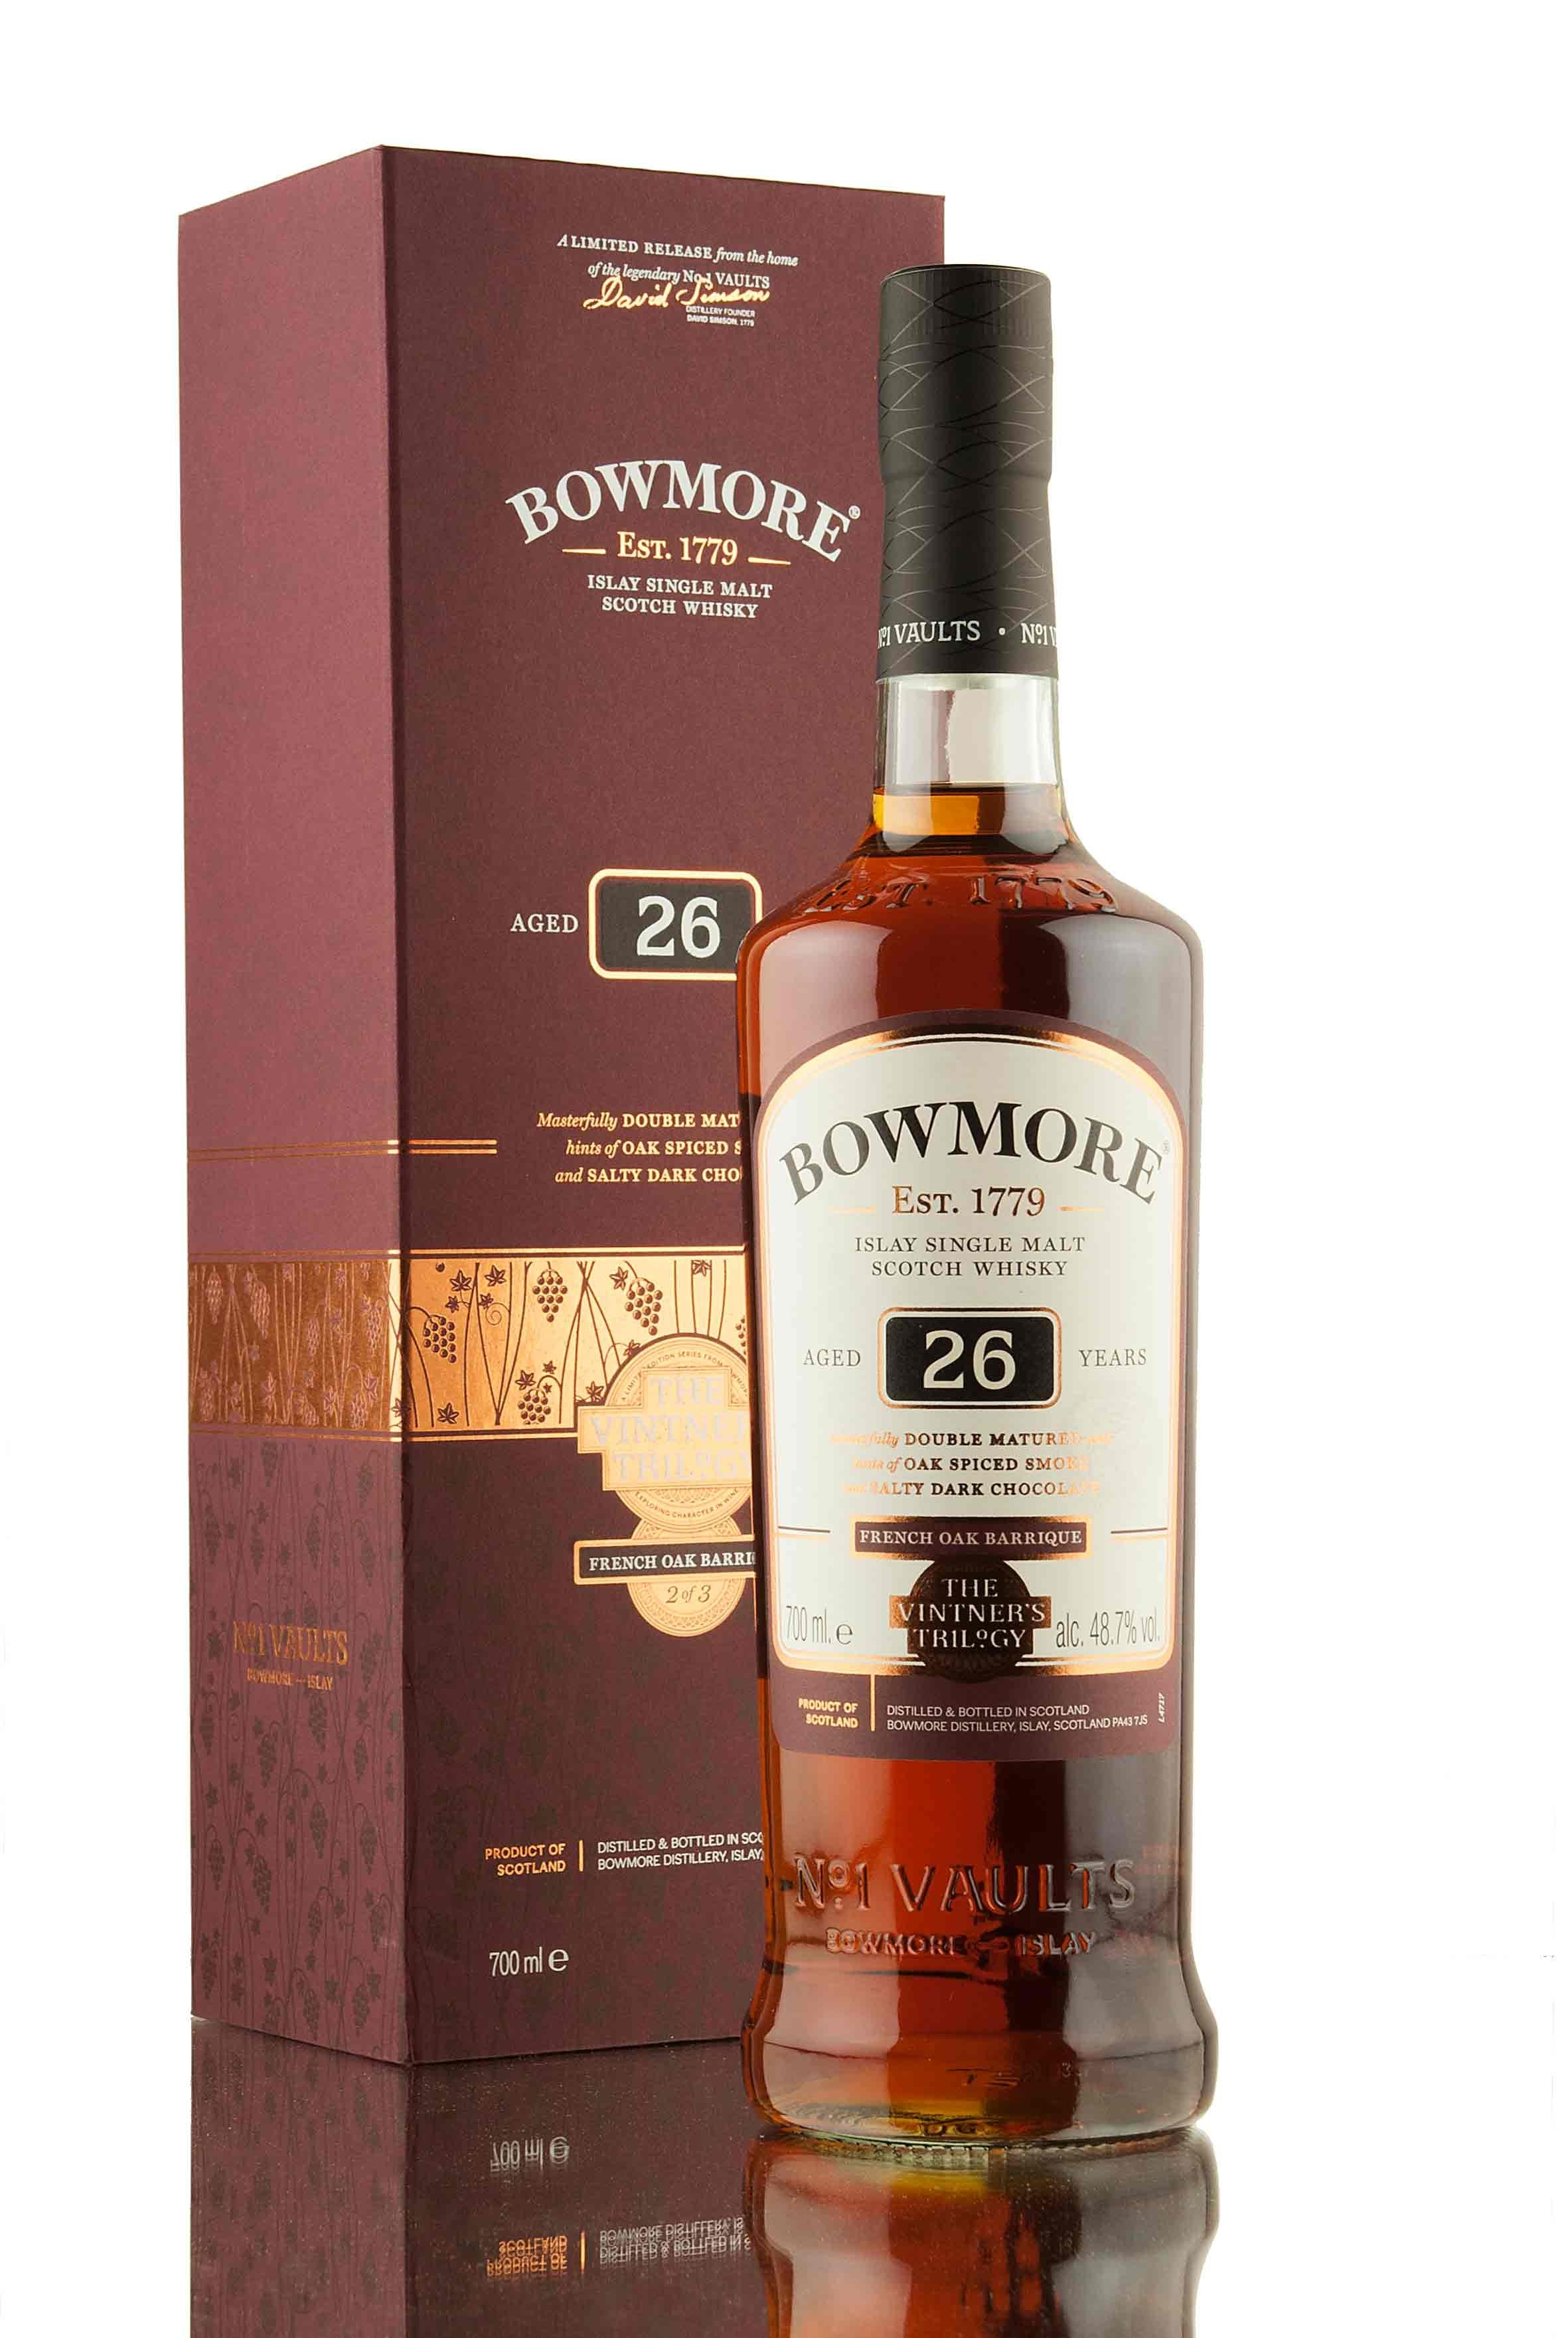 Bowmore 26 Year Old | The Vinter's Trilogy